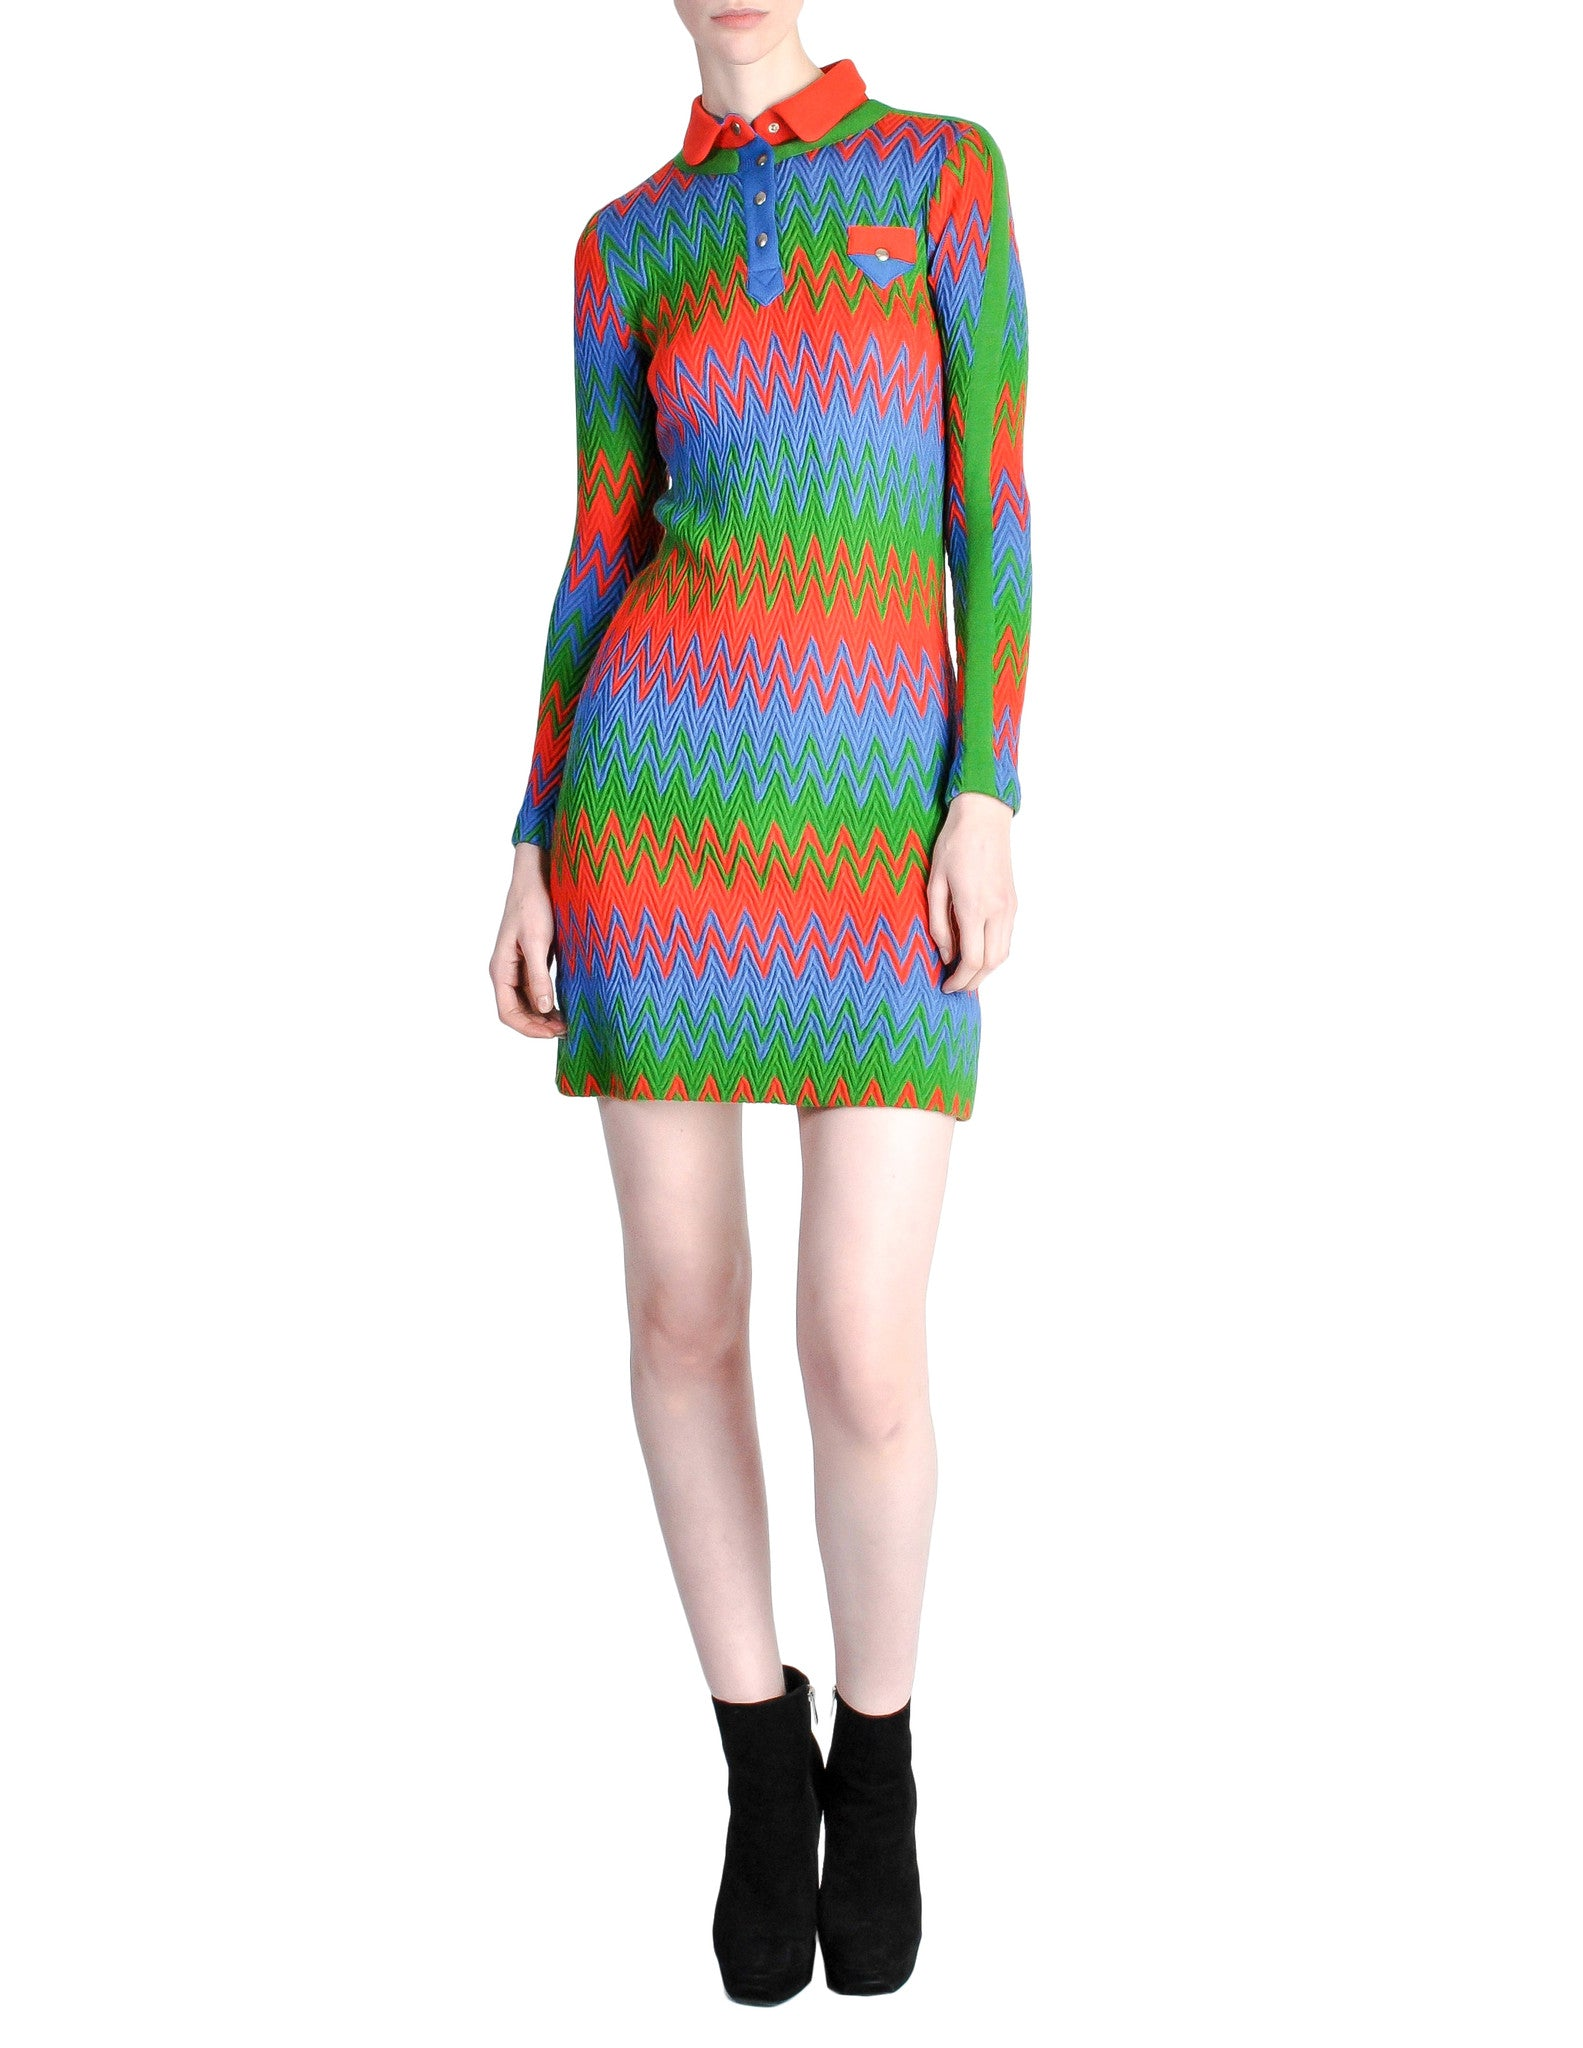 Emmanuelle Khanh for Missoni Vintage Multicolor Chevron Knit Mini Dress - Amarcord Vintage Fashion  - 1